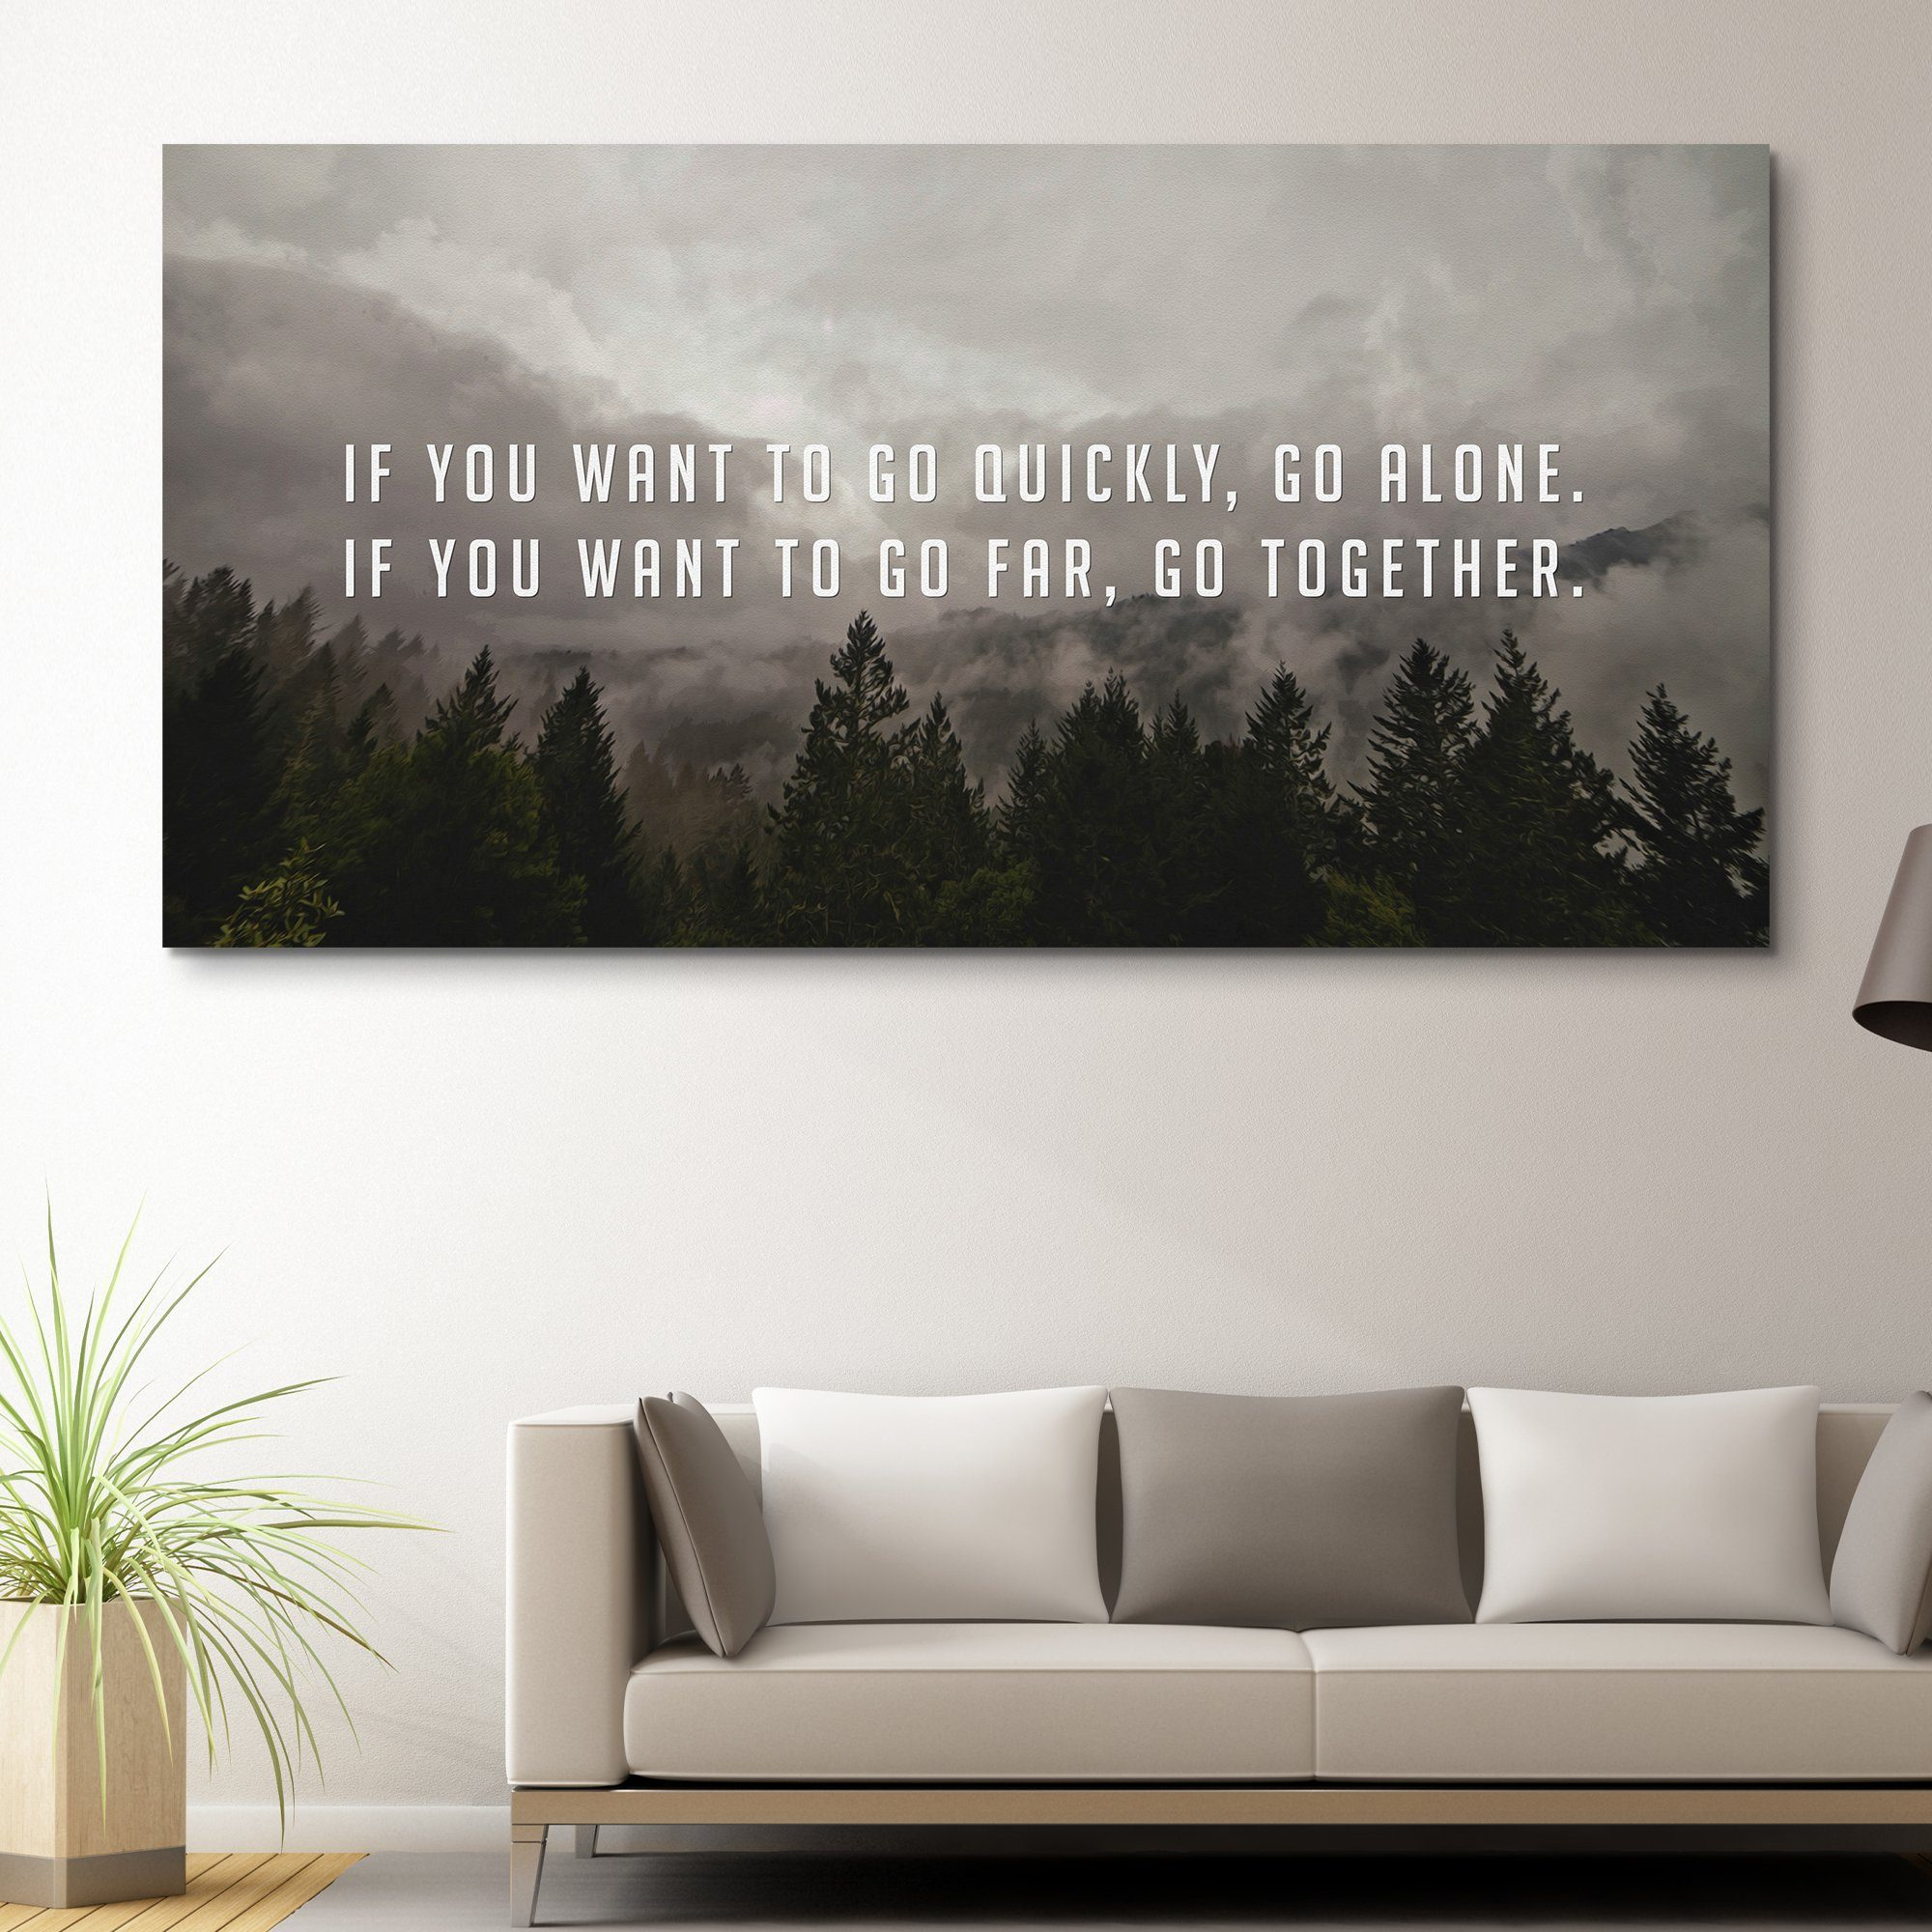 If You Want To Go Quickly, Go Alone. If You Want To Go Far, Go Together wall art